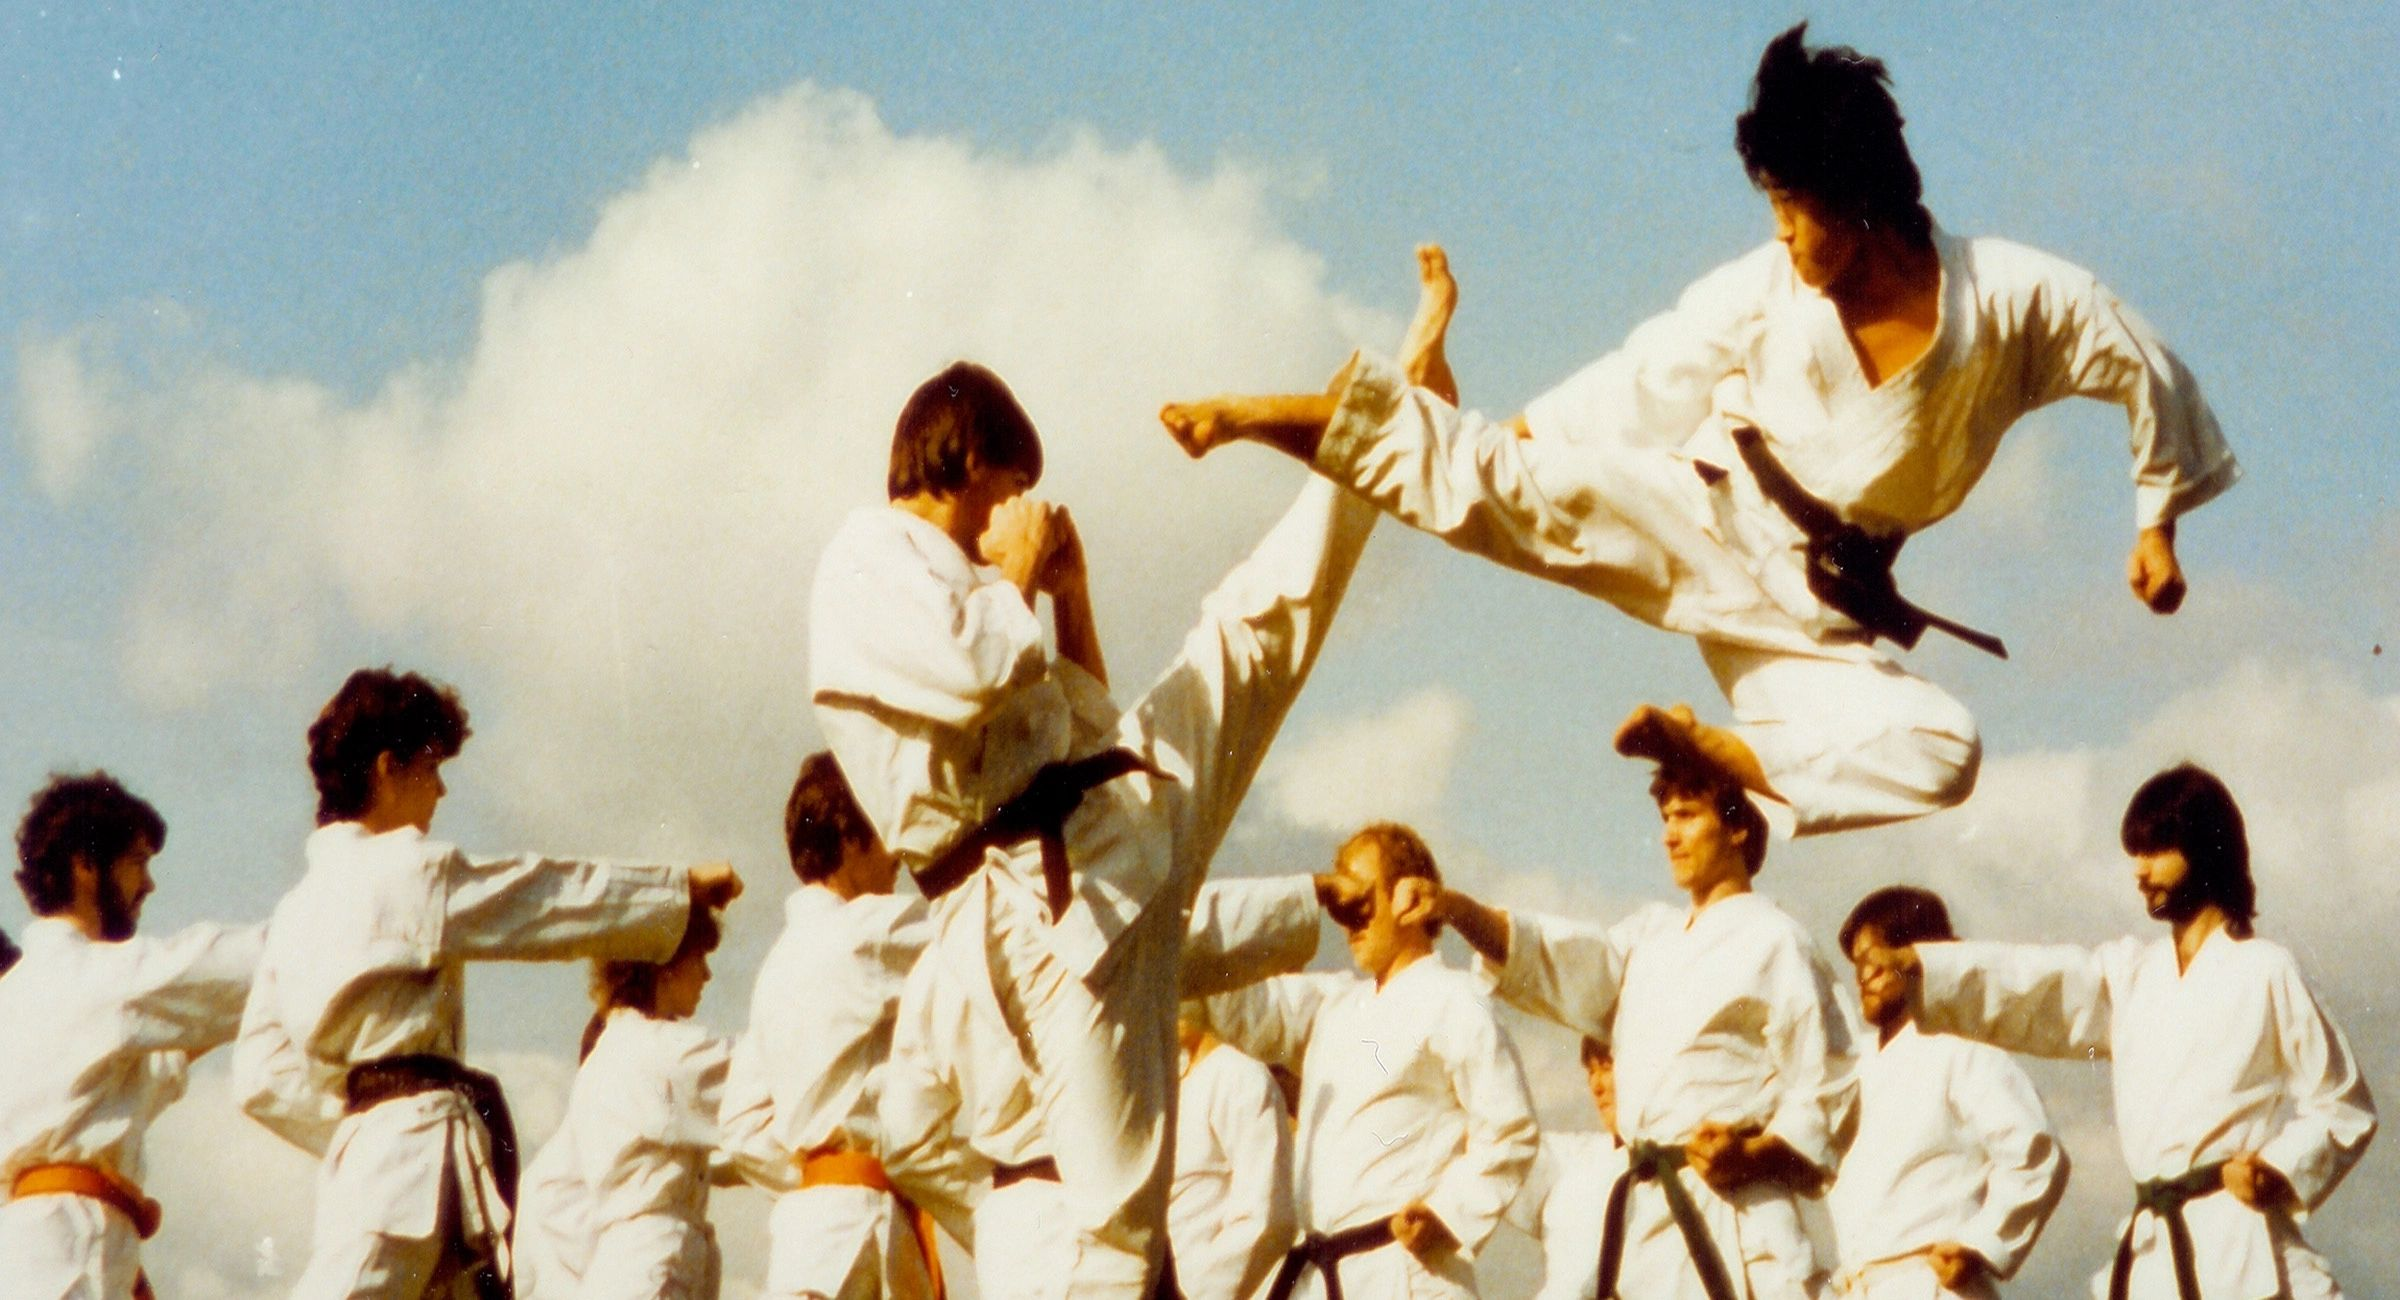 Self Defence Classes in London